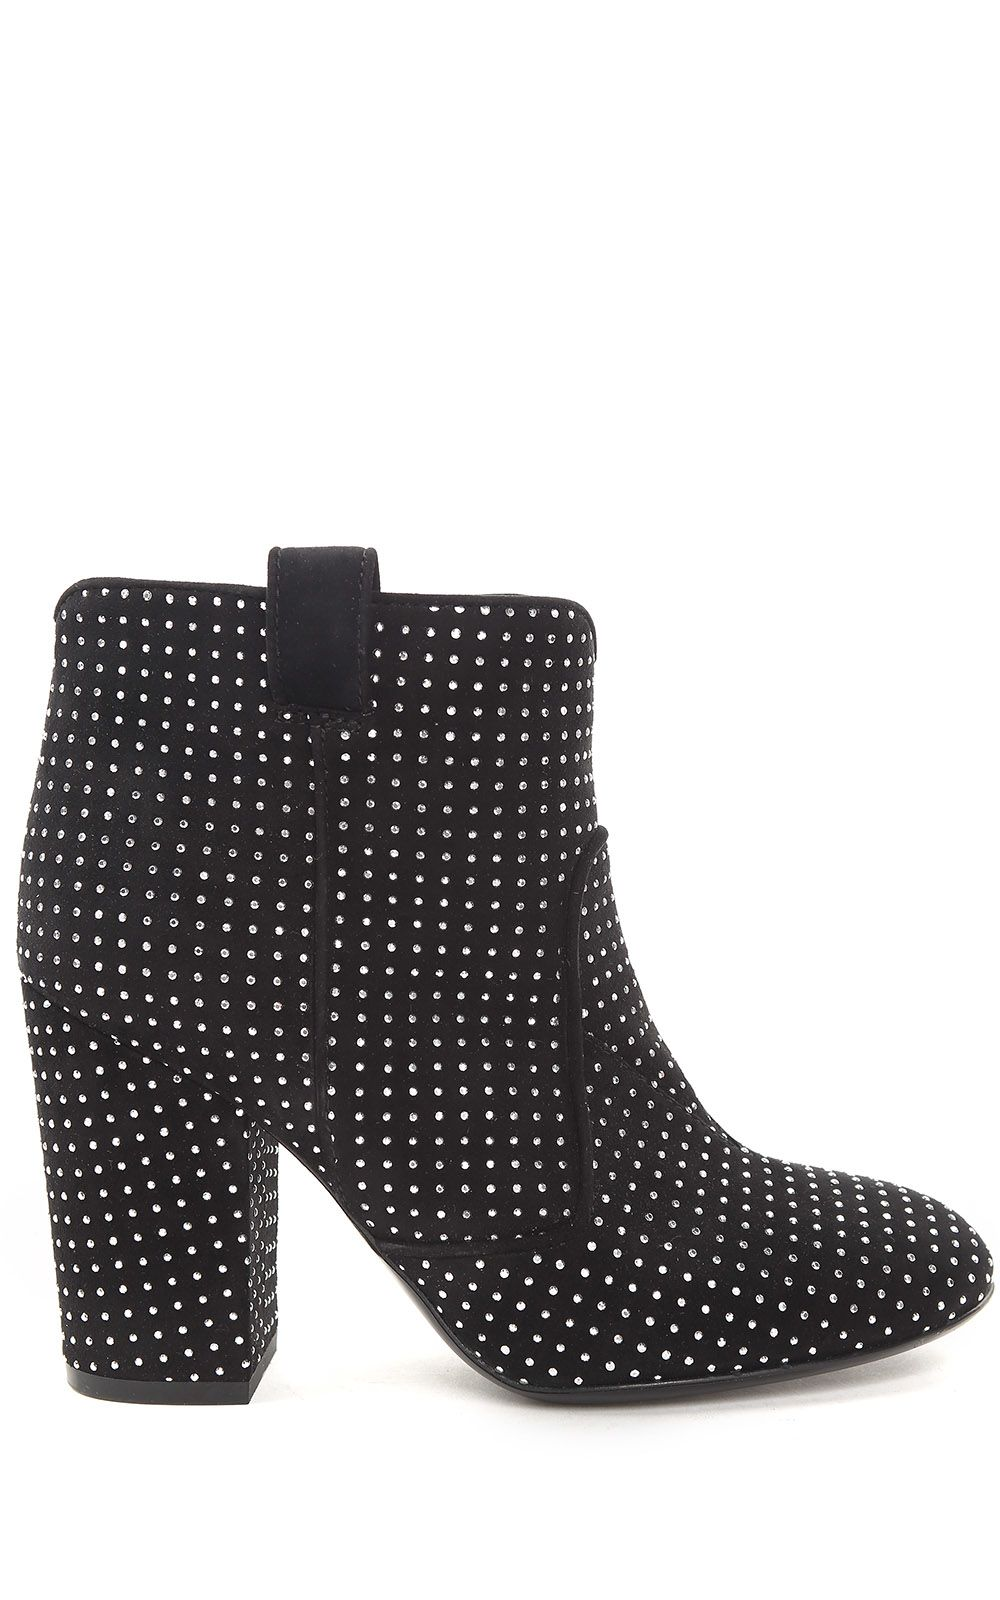 Laurence Dacade Pete Studs Suede Ankle Boots